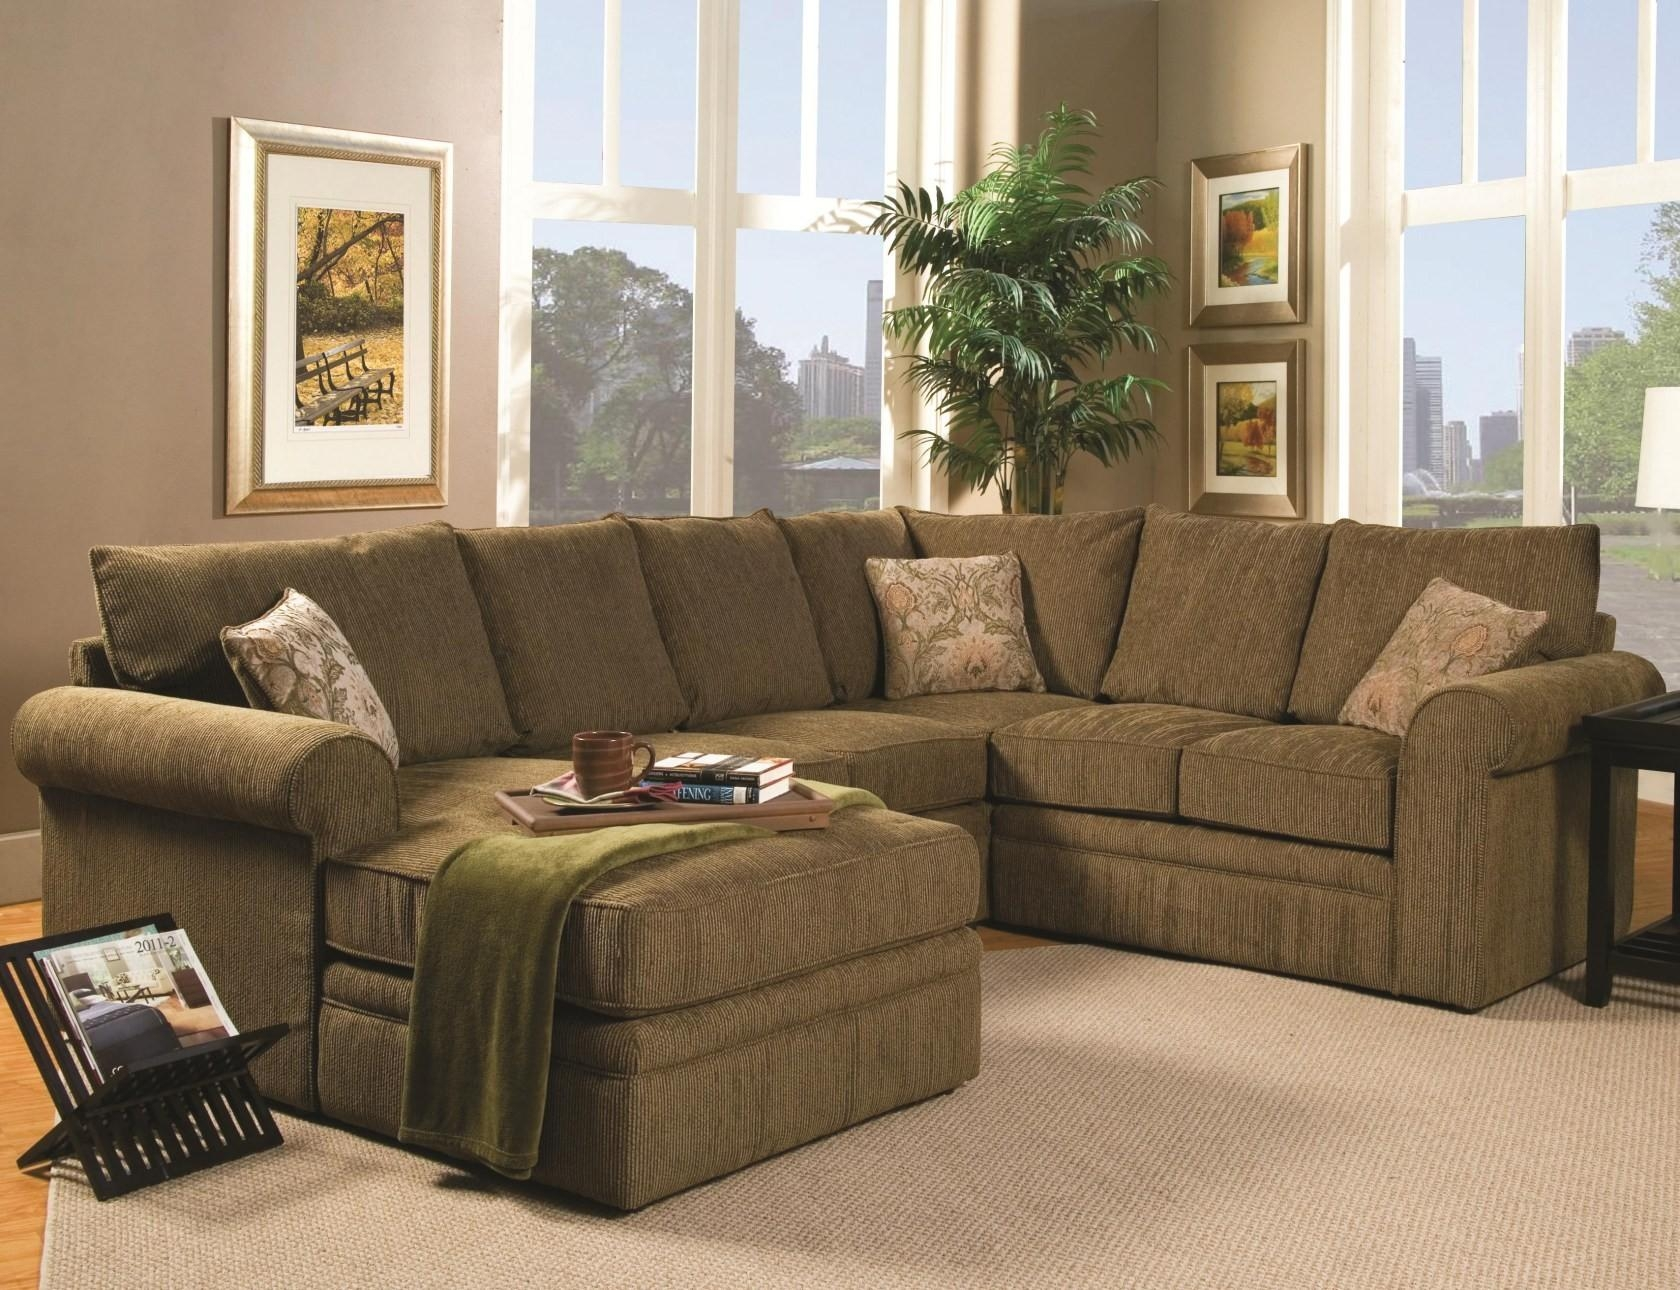 The Big Room For U Shaped Leather Sectional Sofa : S3Net Pertaining To Green Sectional Sofa With Chaise (Image 15 of 15)